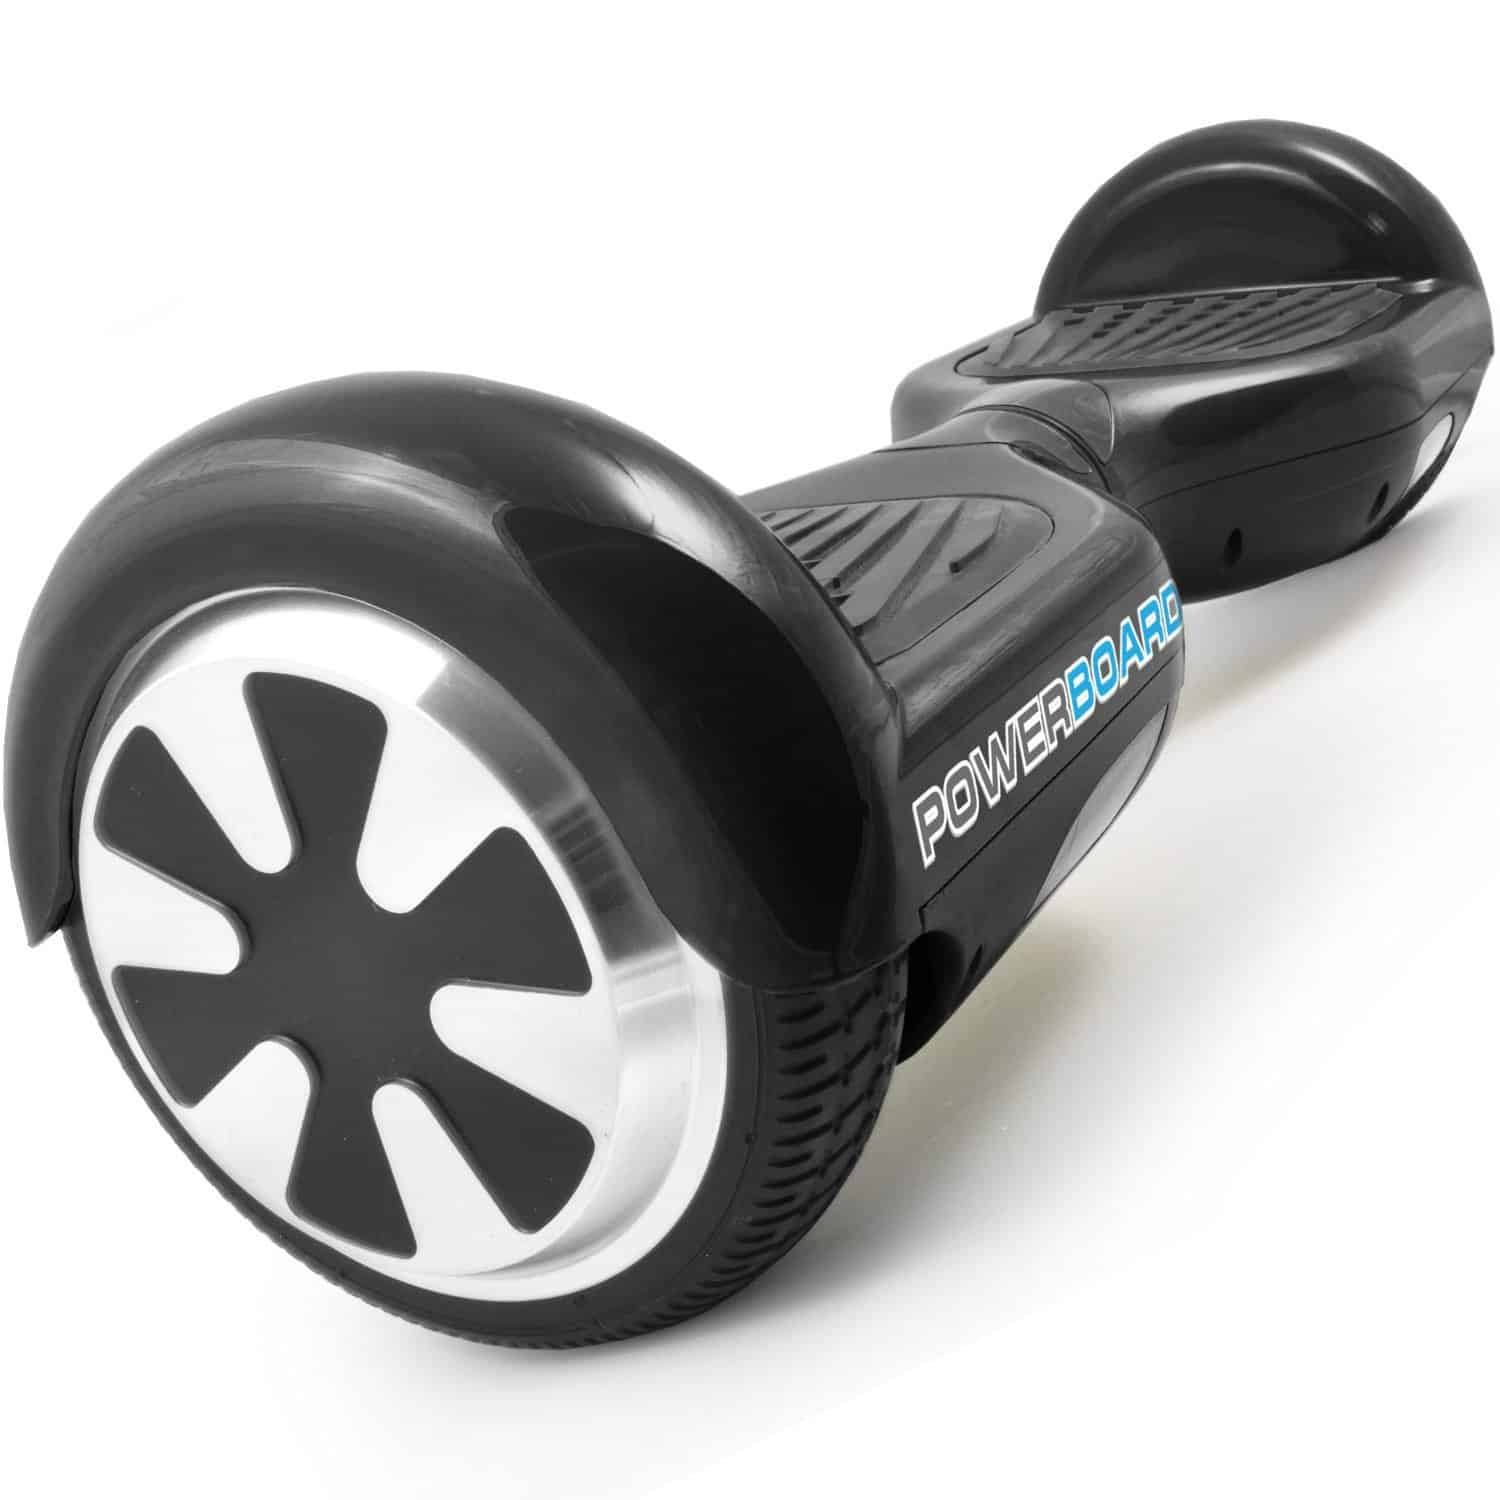 8. Powerboard Self Balancing Scooter